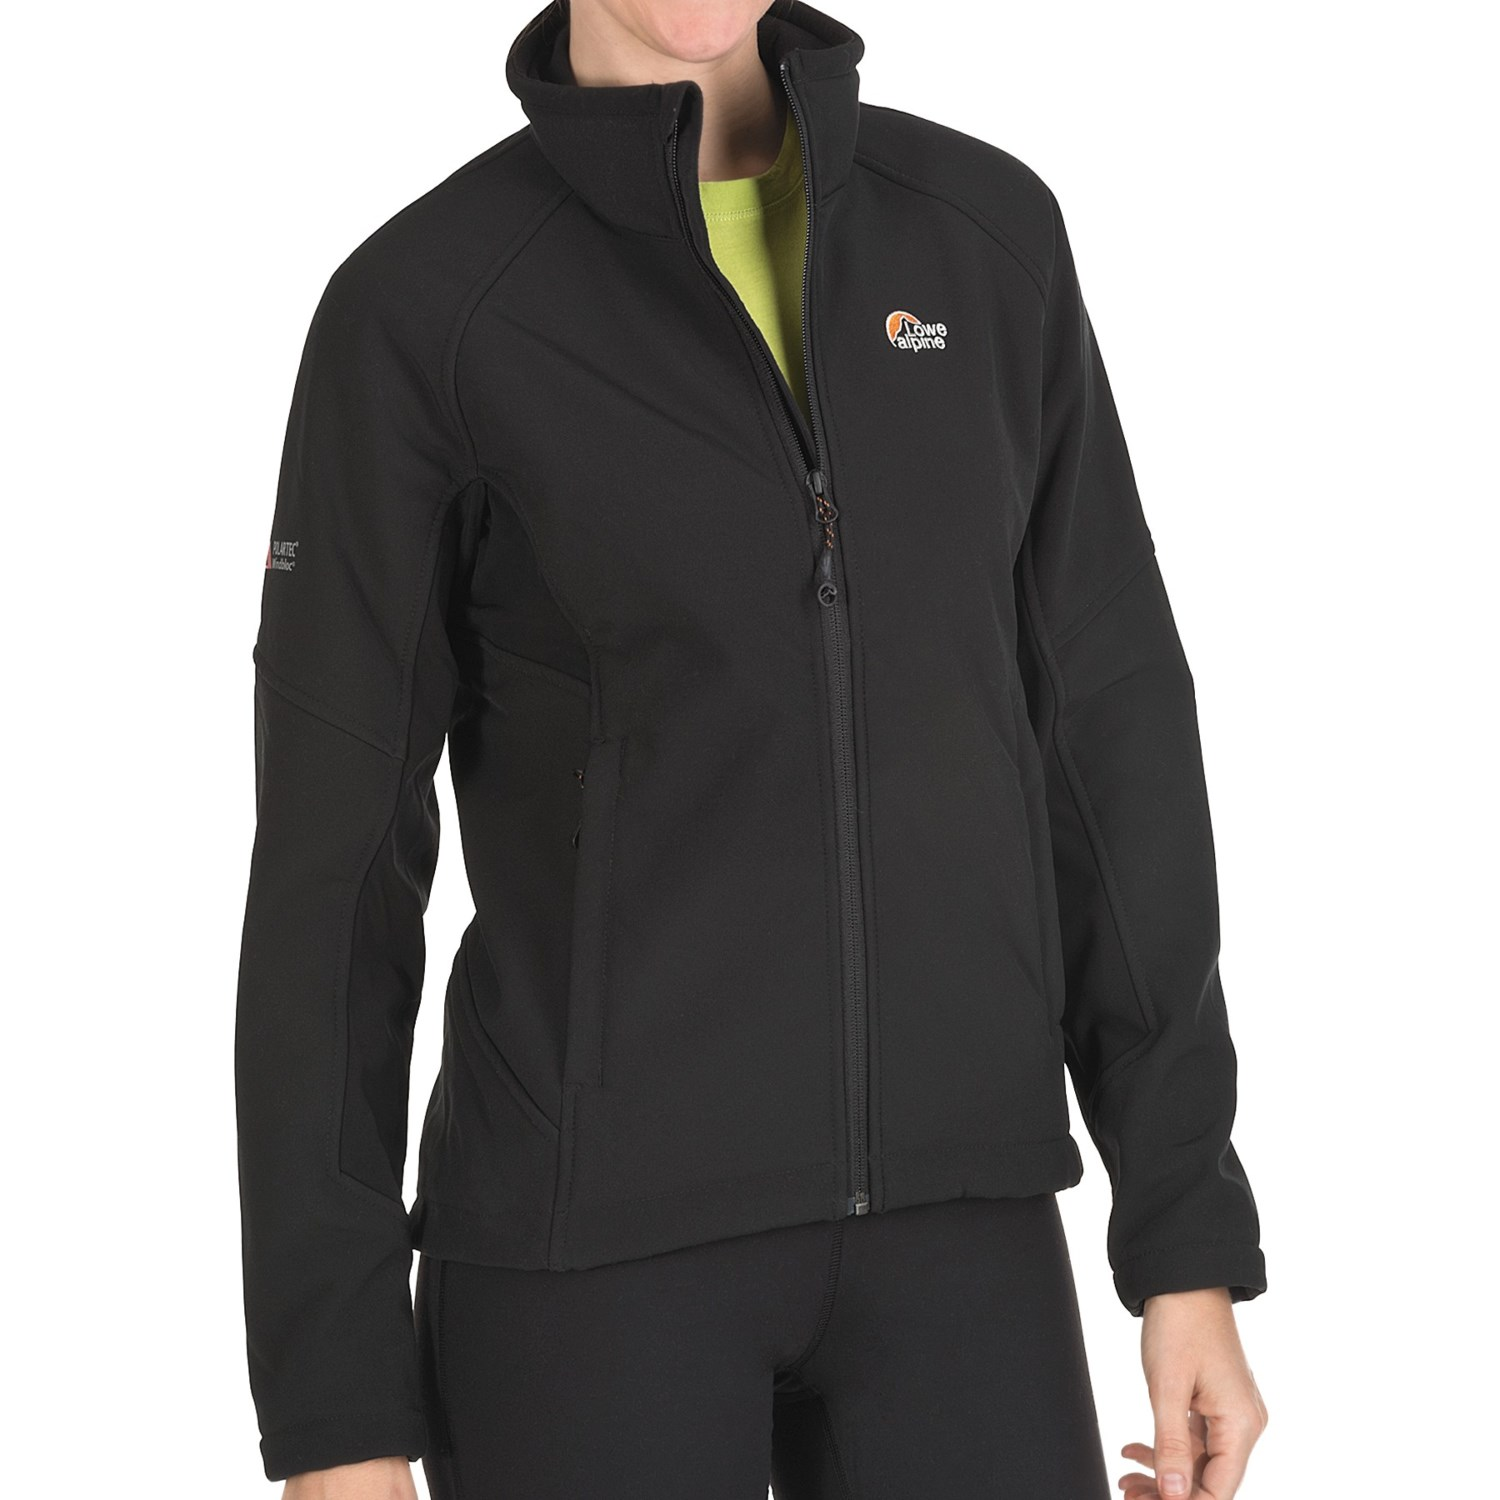 Alpine Design Clothing Company Lowe Alpine Windbreaker Soft